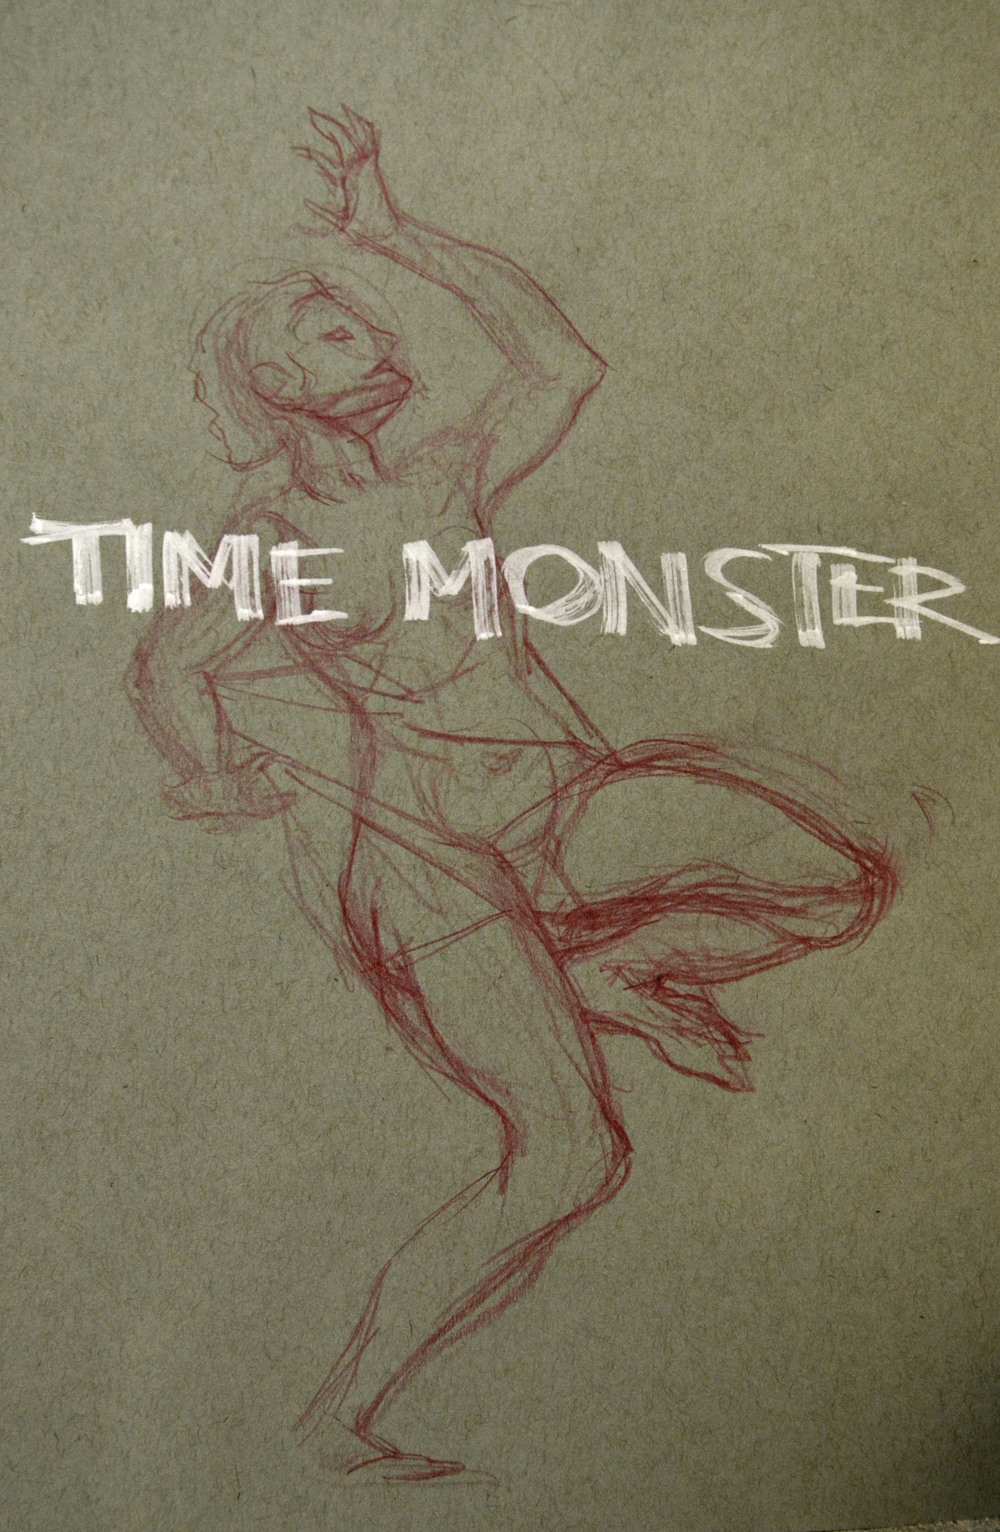 Time Monster